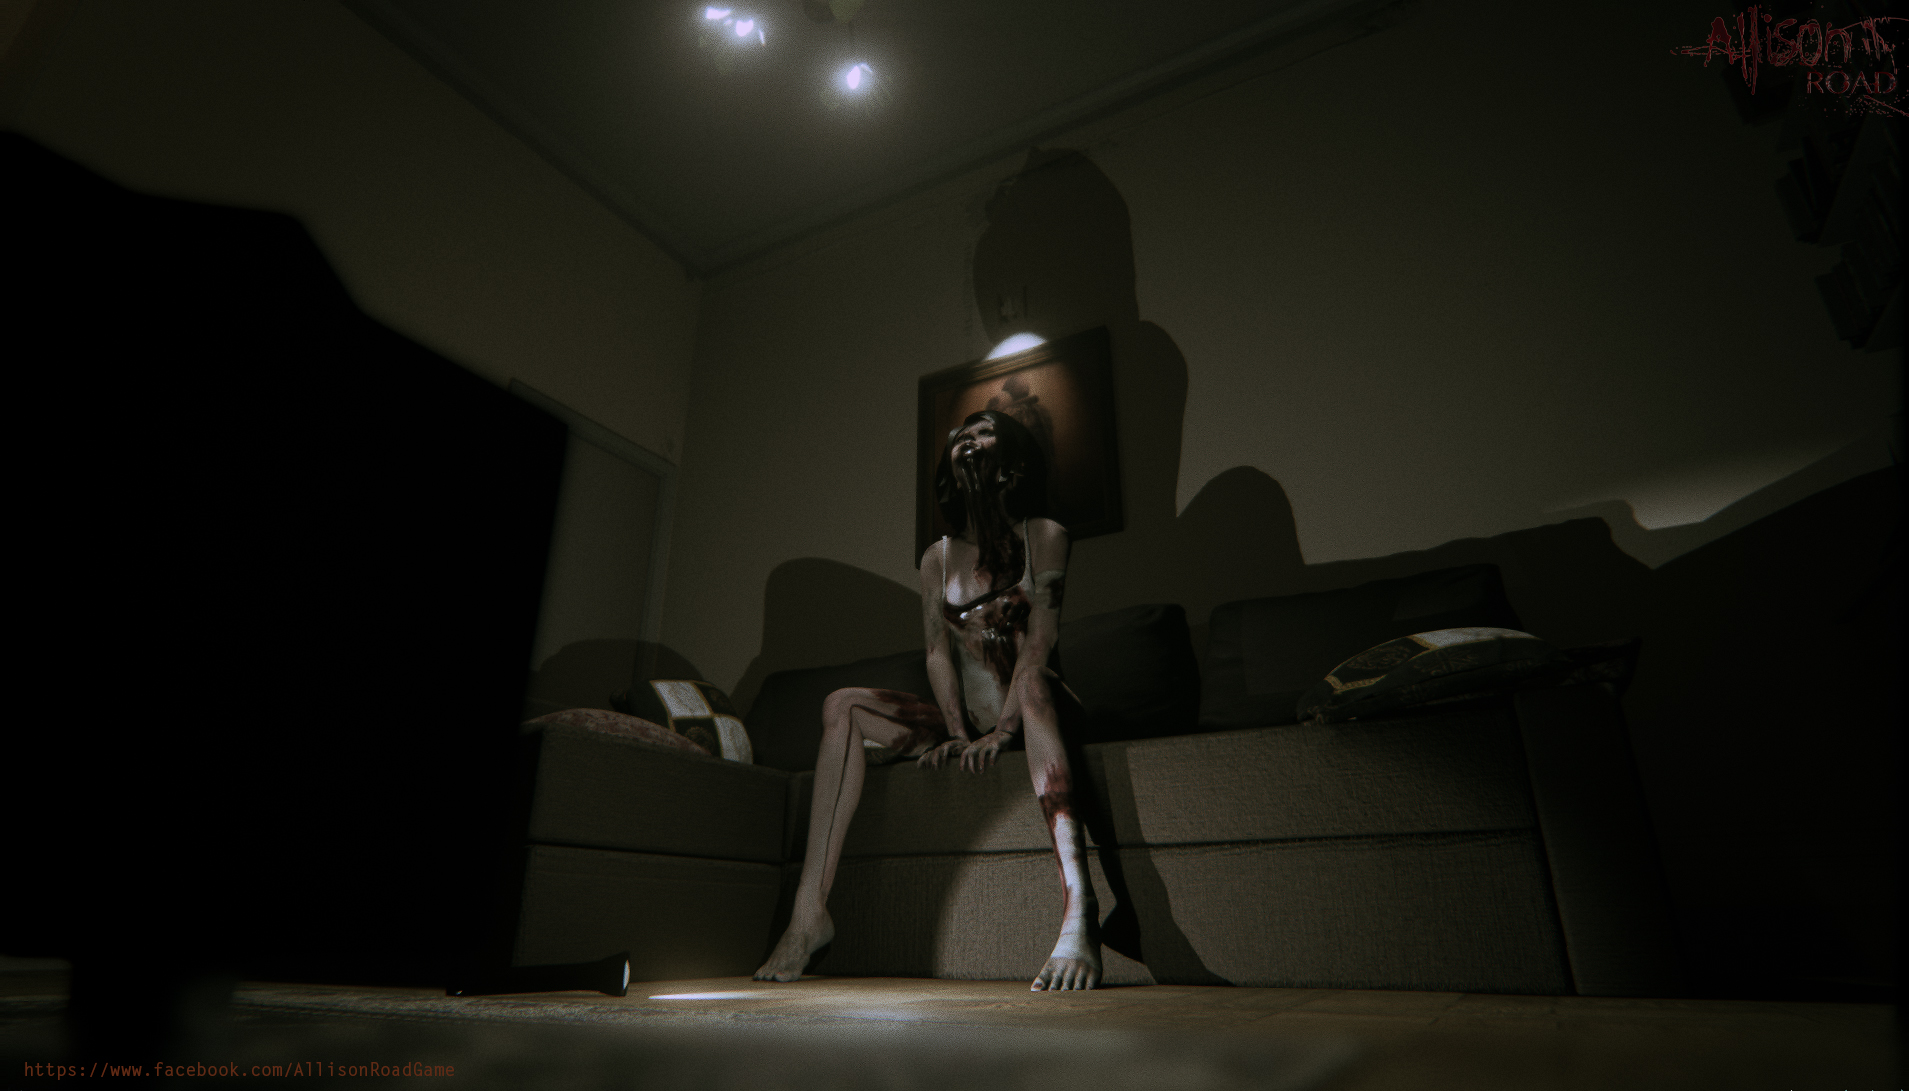 PT Inspired Allison Road Returns From Cancellation 1c748cc8bb7c96d0164bf8f0cd7b8370